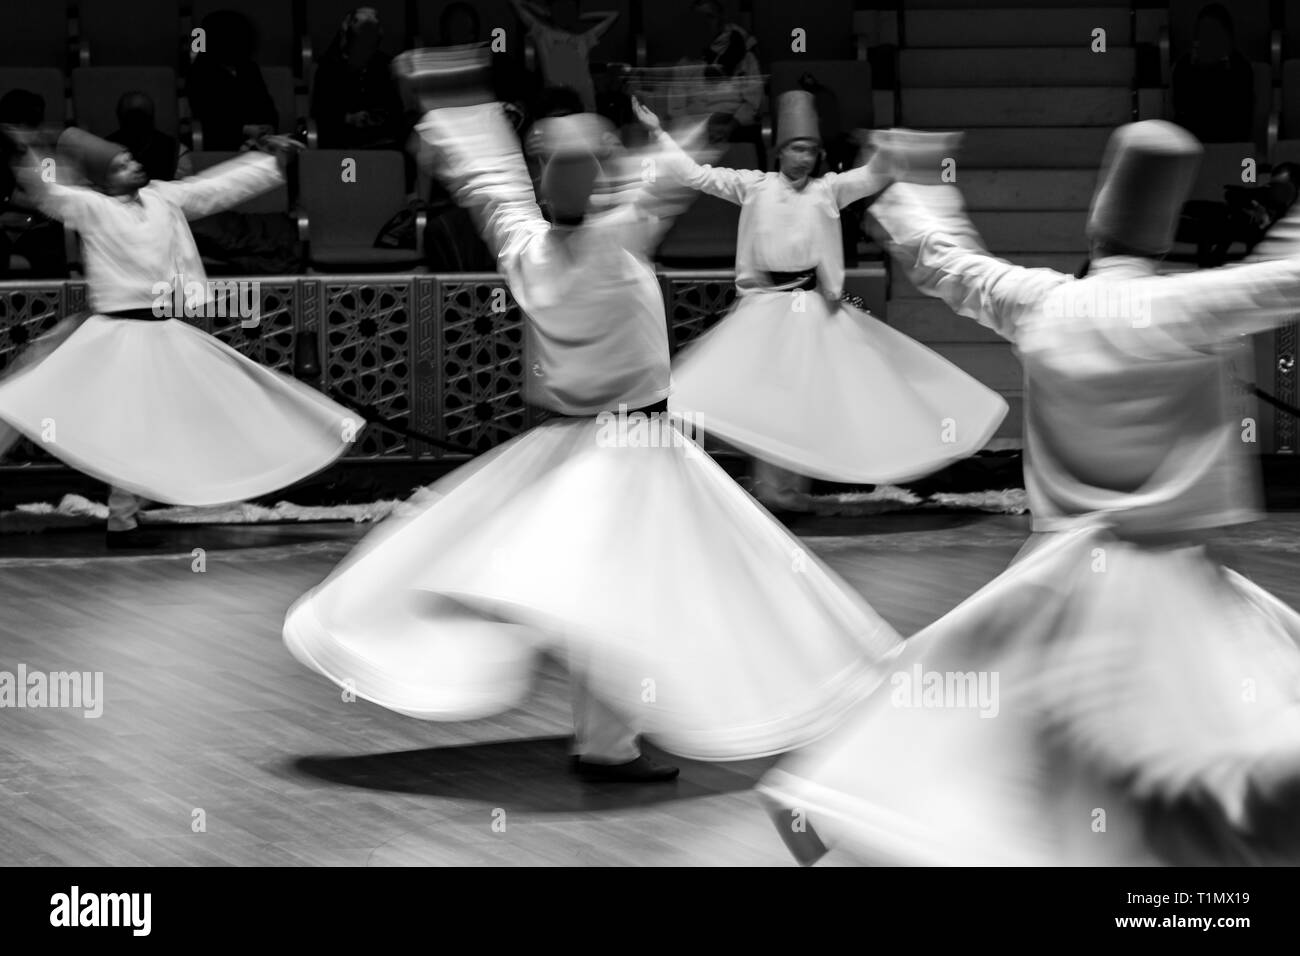 Unidentified whirling Dervishes or Semazen in Konya - Stock Image